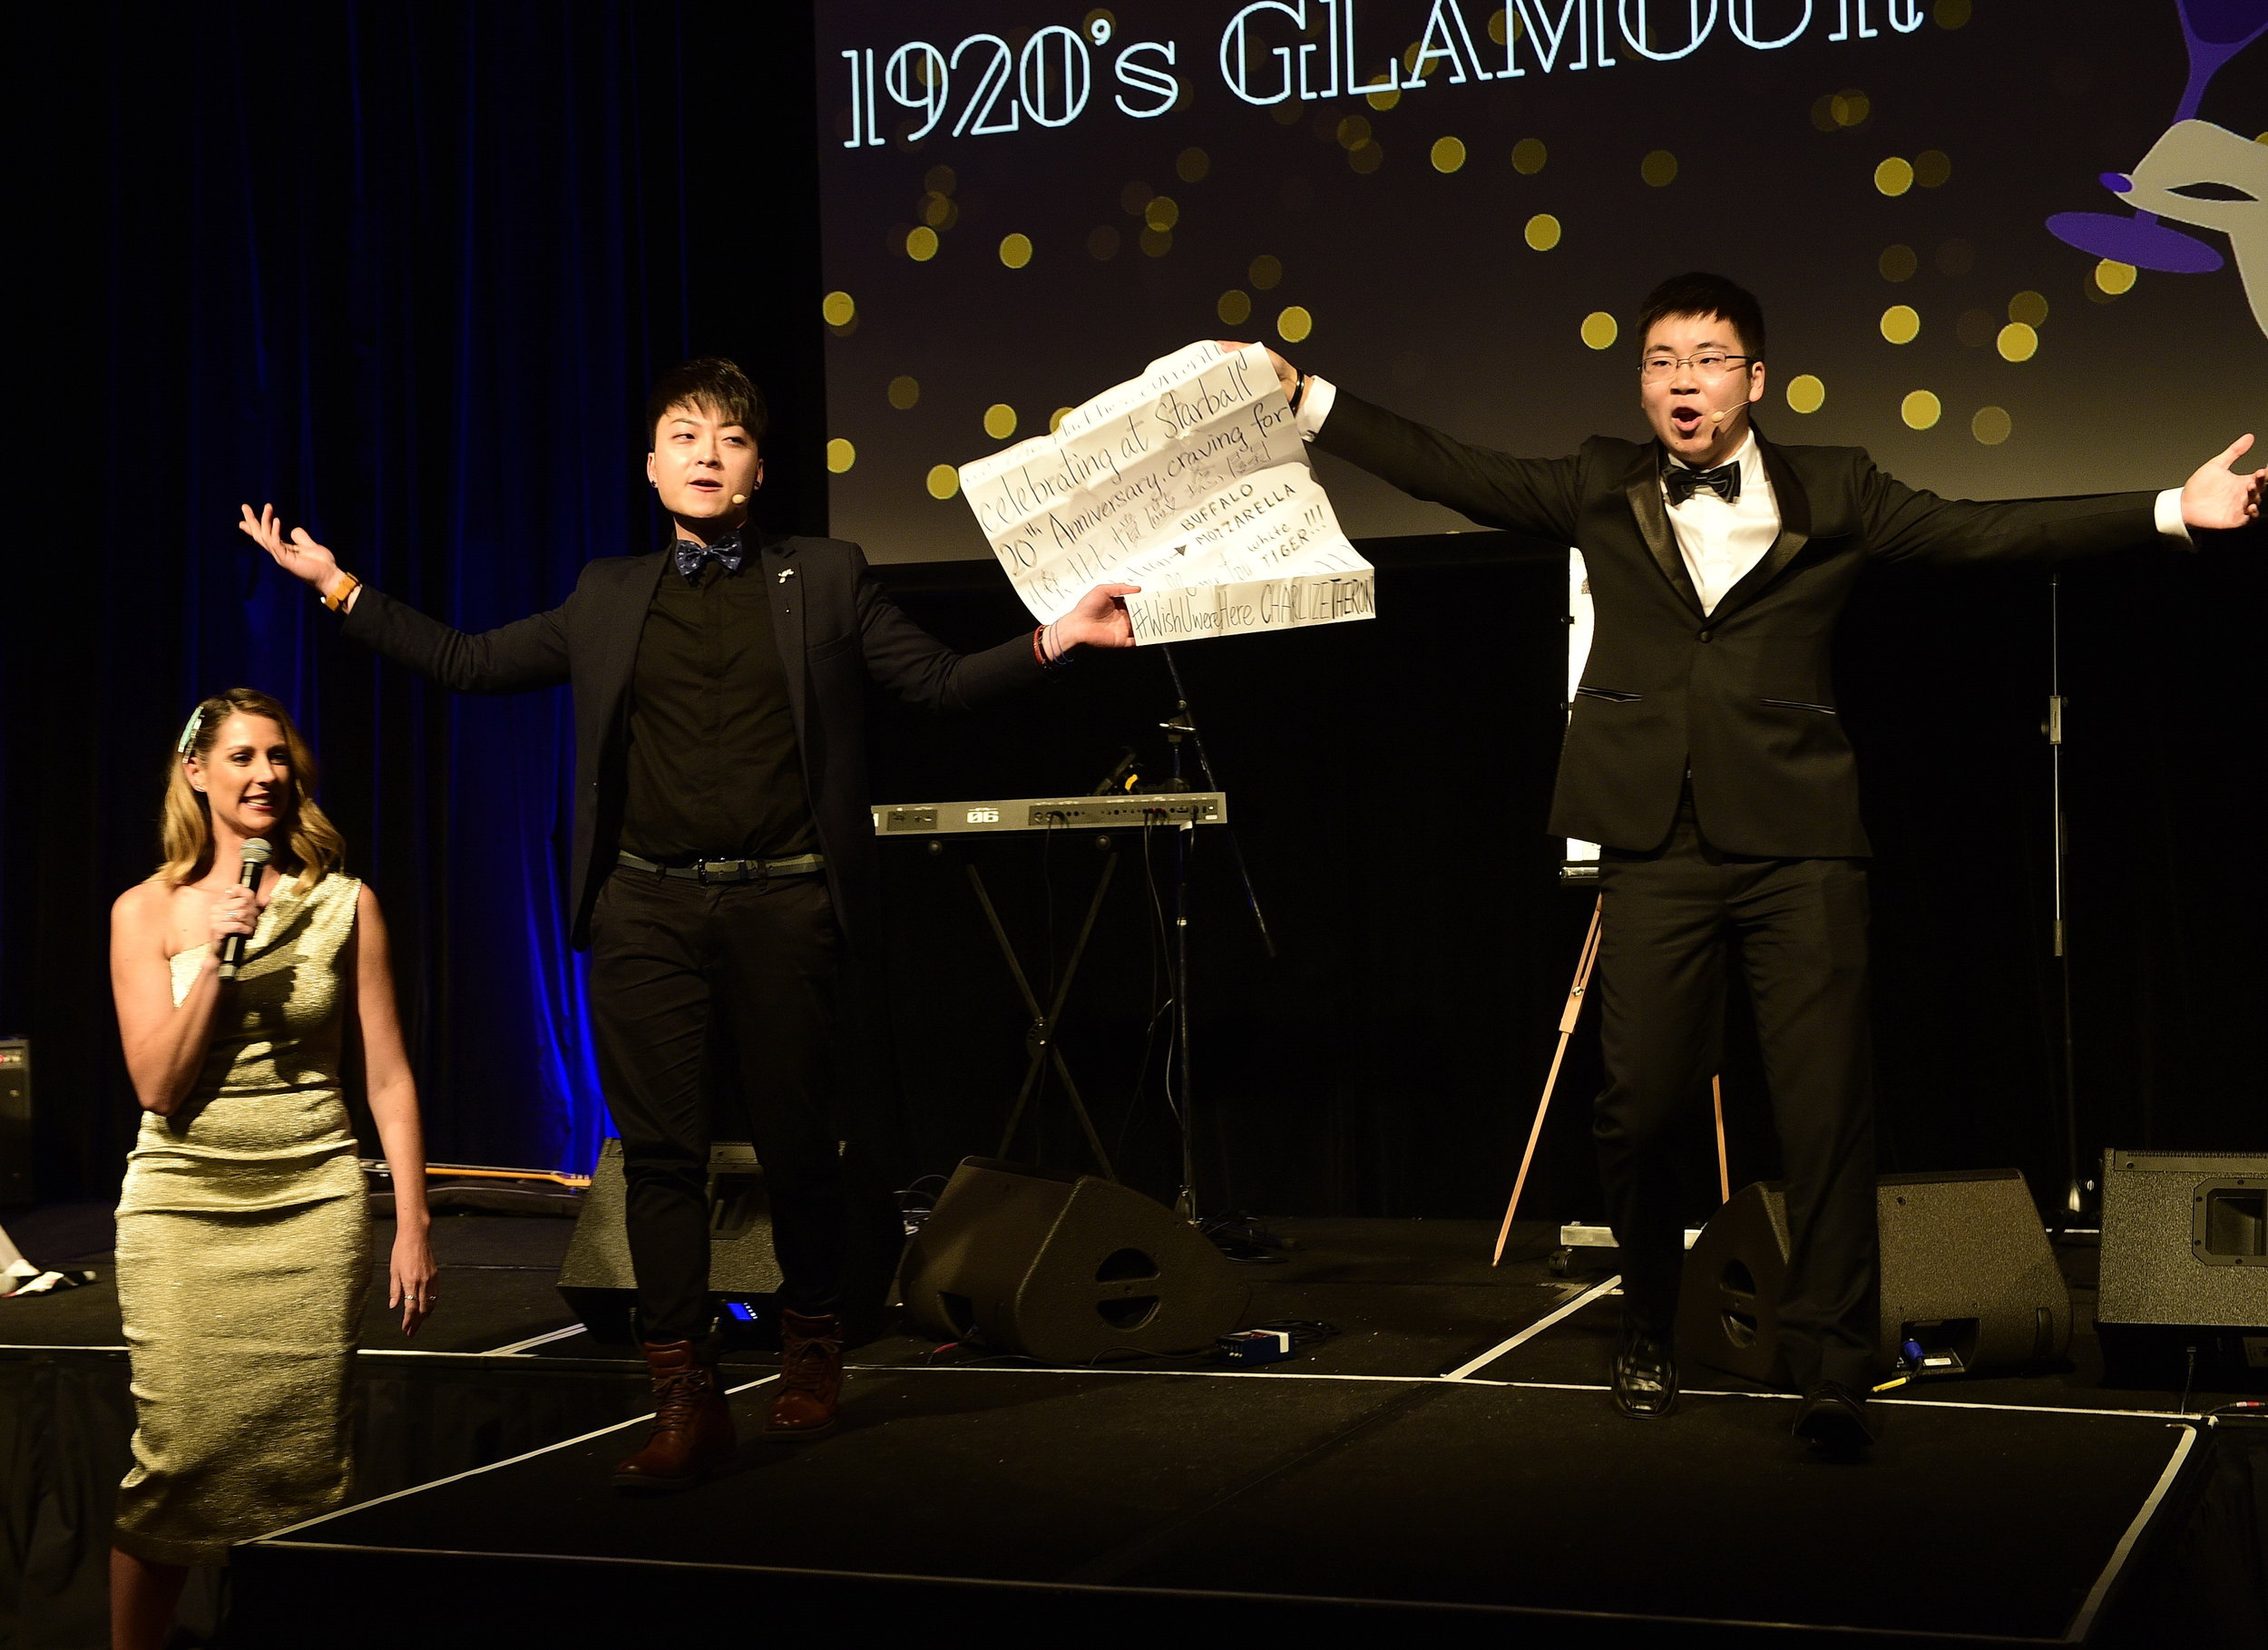 After-Dinner Stage Shows - - Magician performs on a stage for all audiences- Visual and mind-blowing demonstrations with audience involvement- Easily customisable for your event / message